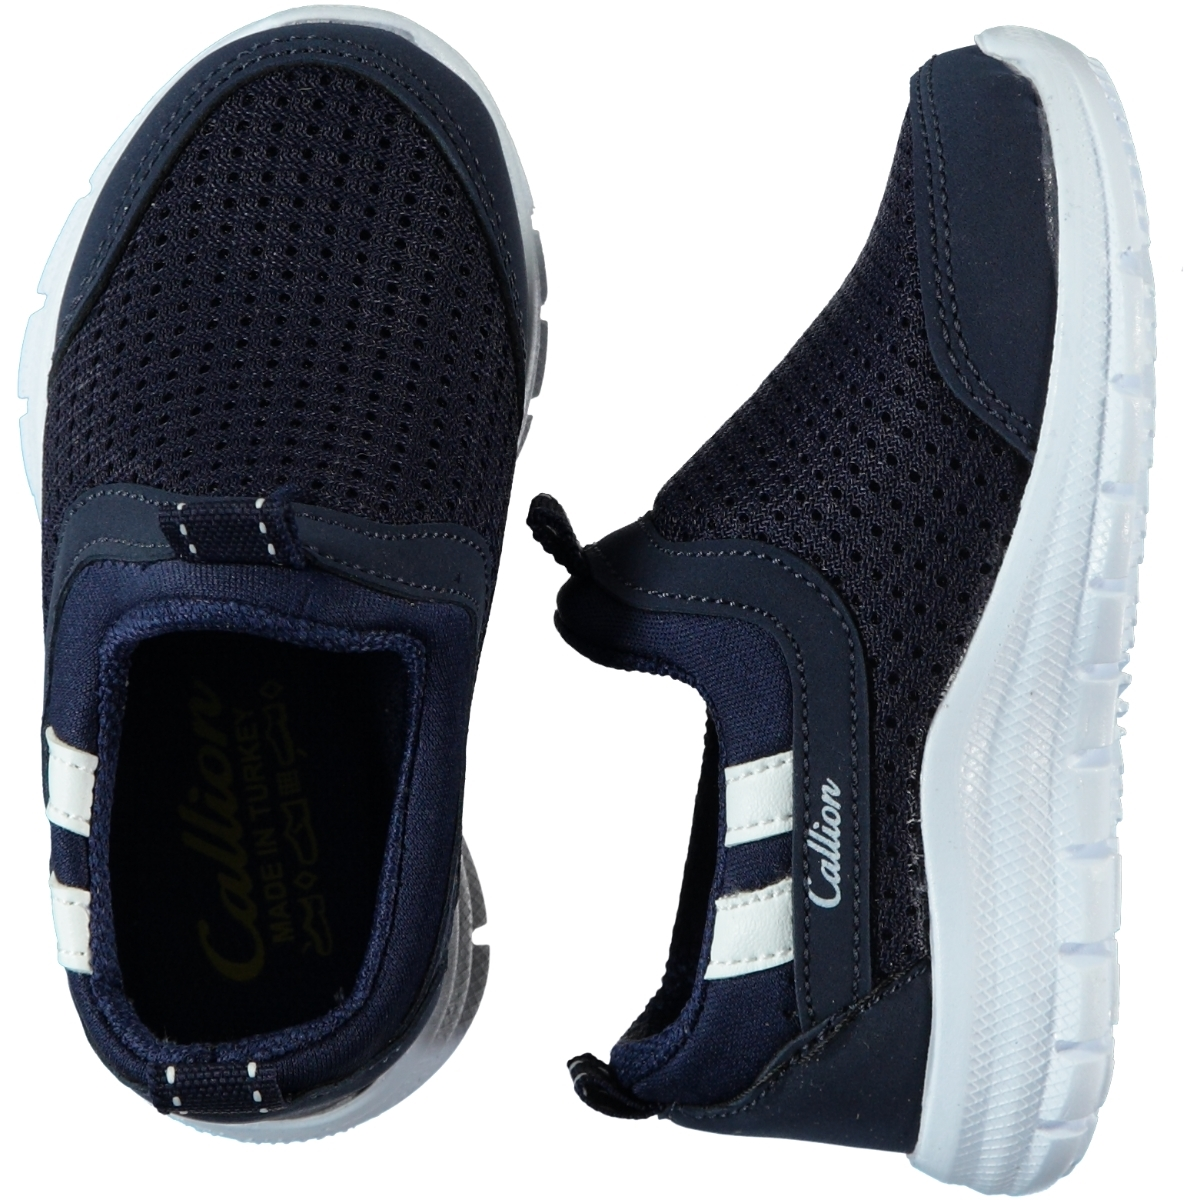 Callion Baby Boy Navy Blue Sneakers 22-25 Number